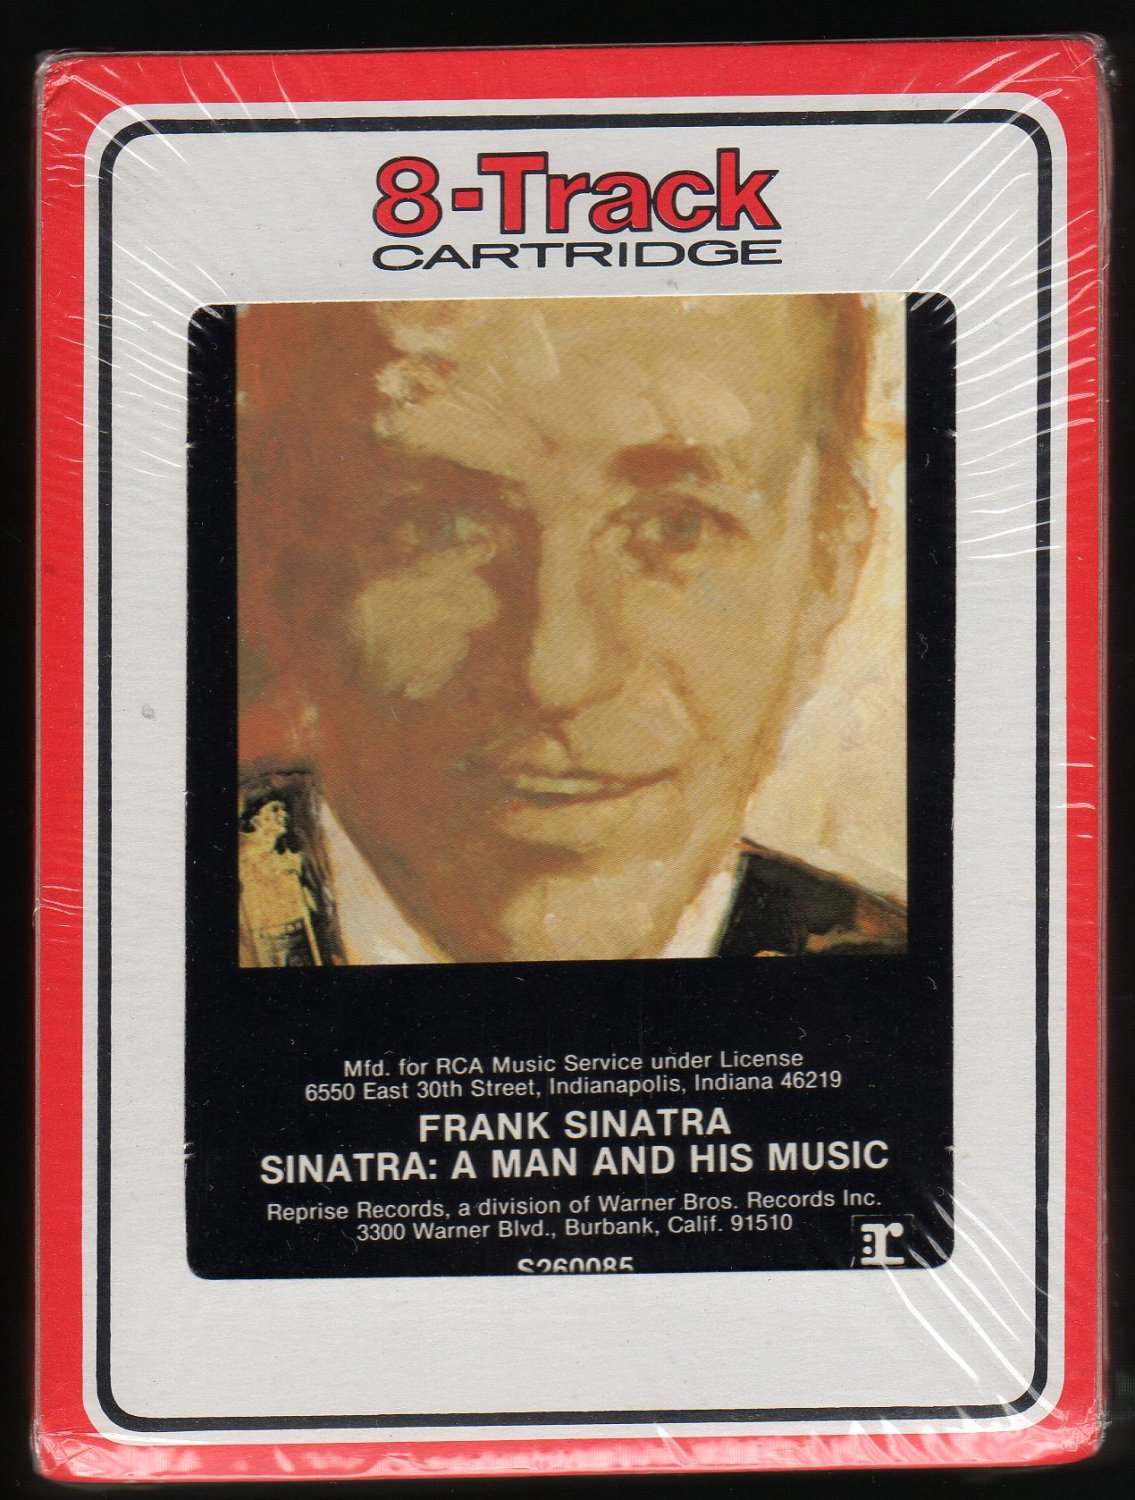 Frank Sinatra - Sinatra: A Man And His Music 1965 RCA Sealed Re-issue A32 8-TRACK TAPE